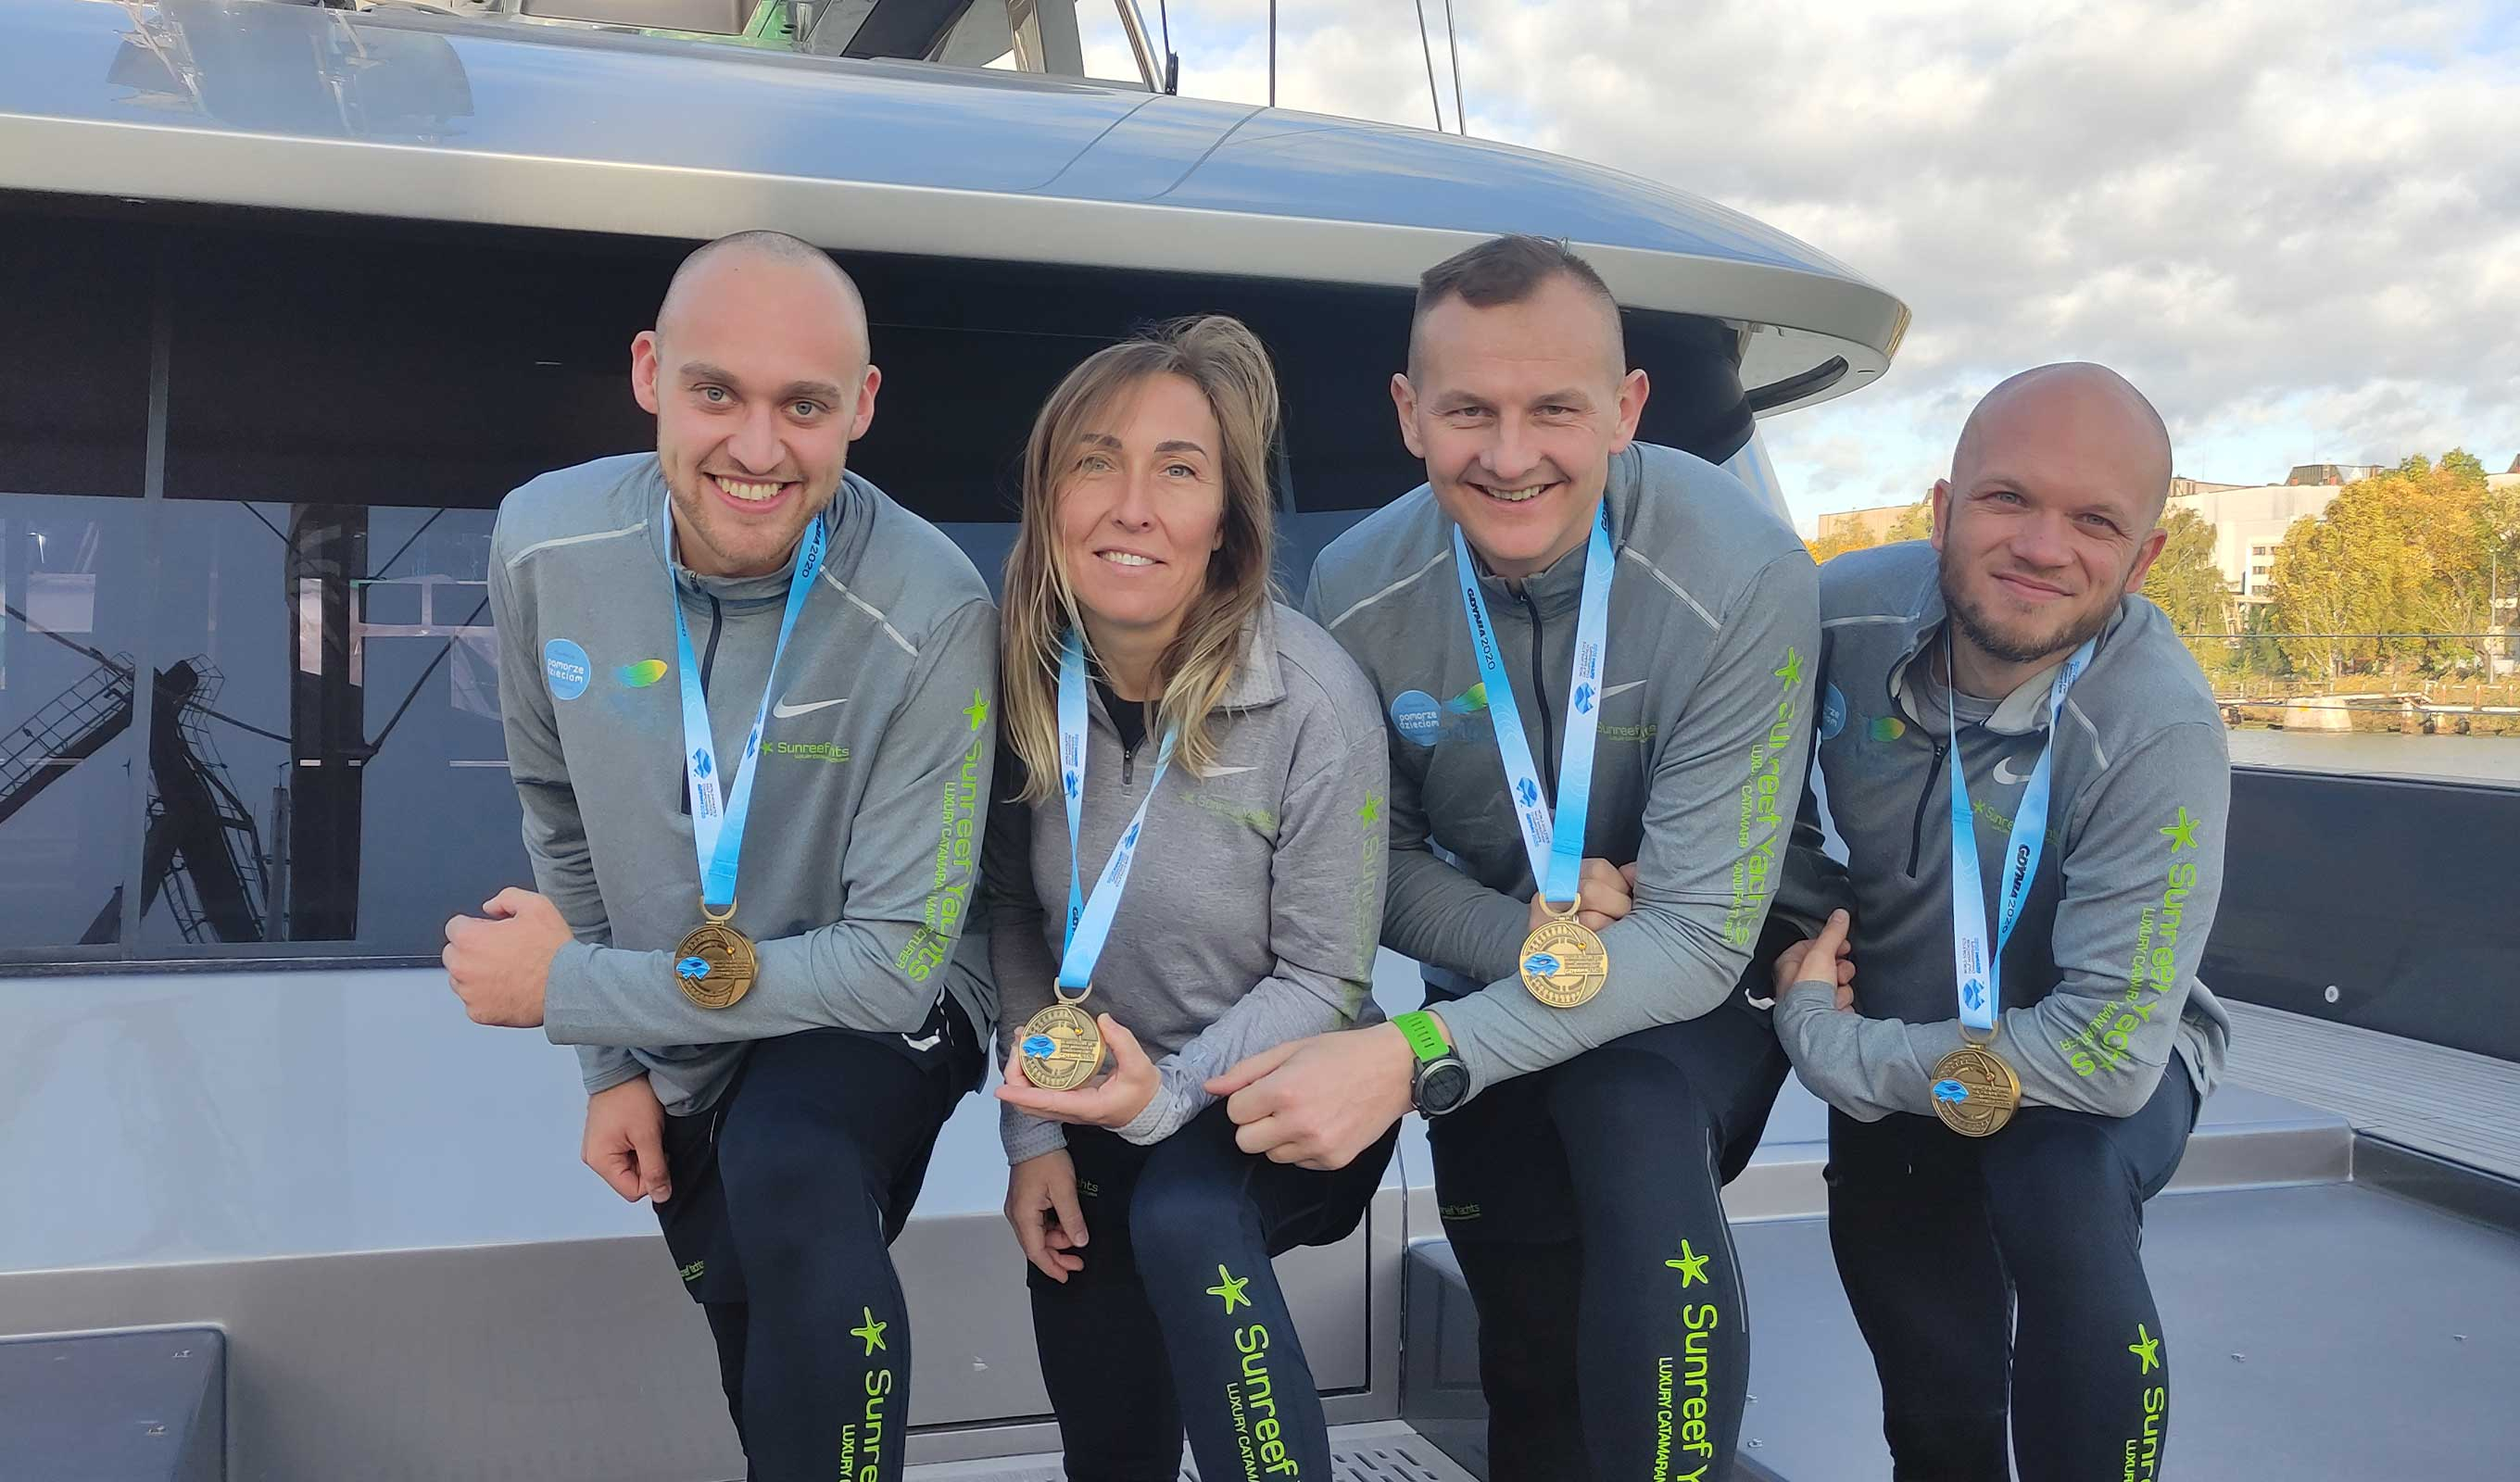 The Sunreef Yachts Running Team took part in a virtual half marathon